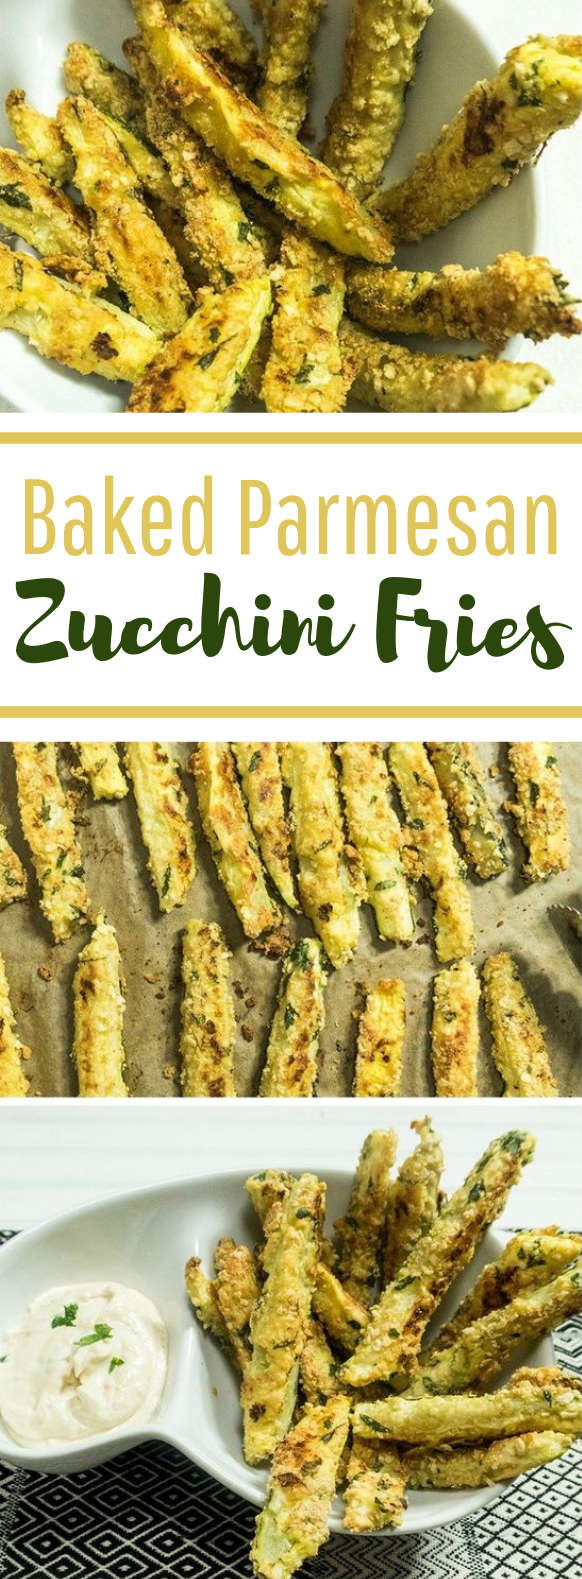 Baked Parmesan Zucchini Fries #vegansnack #lowcarb